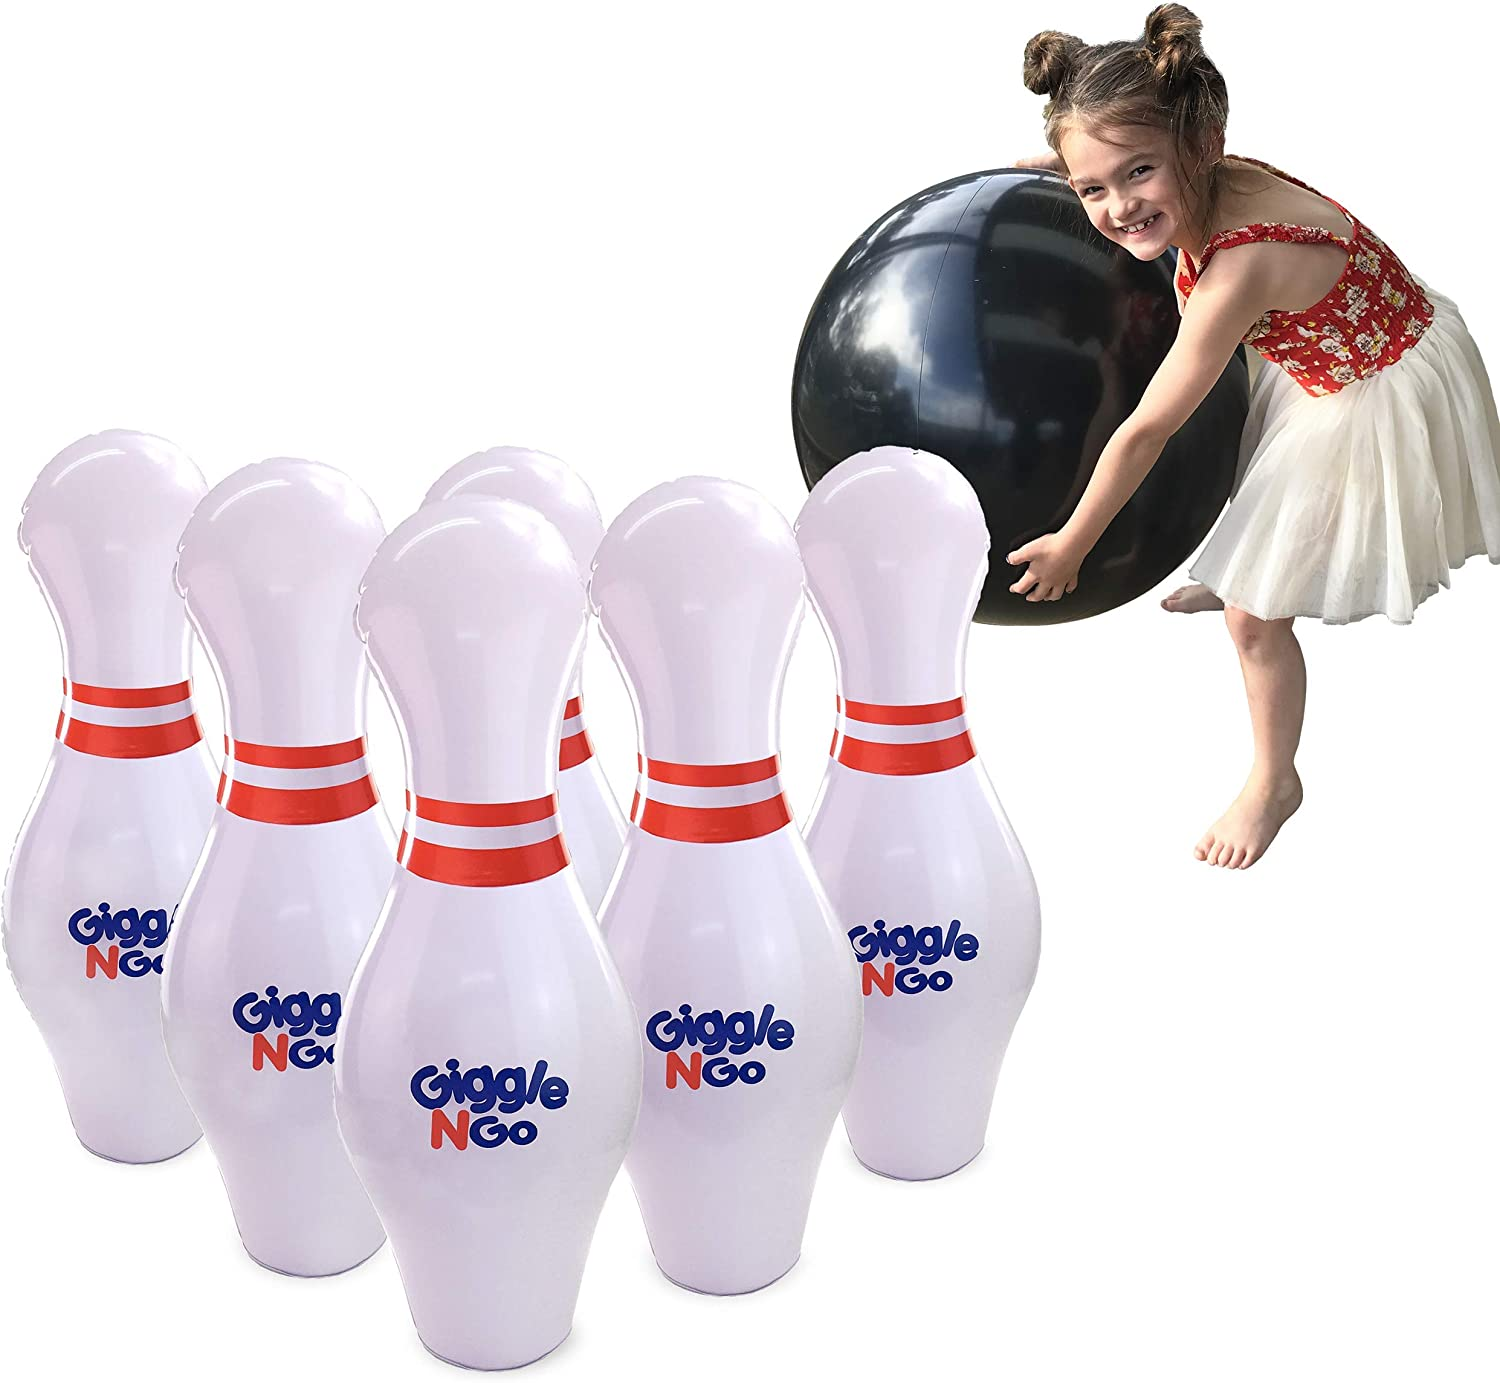 GIGGLE N GO Kids Inflatable Bowling Games - Fun Giant Yard Games for Adults and Family. Fantastic for Indoor or Outdoor Games. Our Kids Bowling Set Inc 6, 70cm Bowling Pins, 1, 60cm Ball and 1 Pump